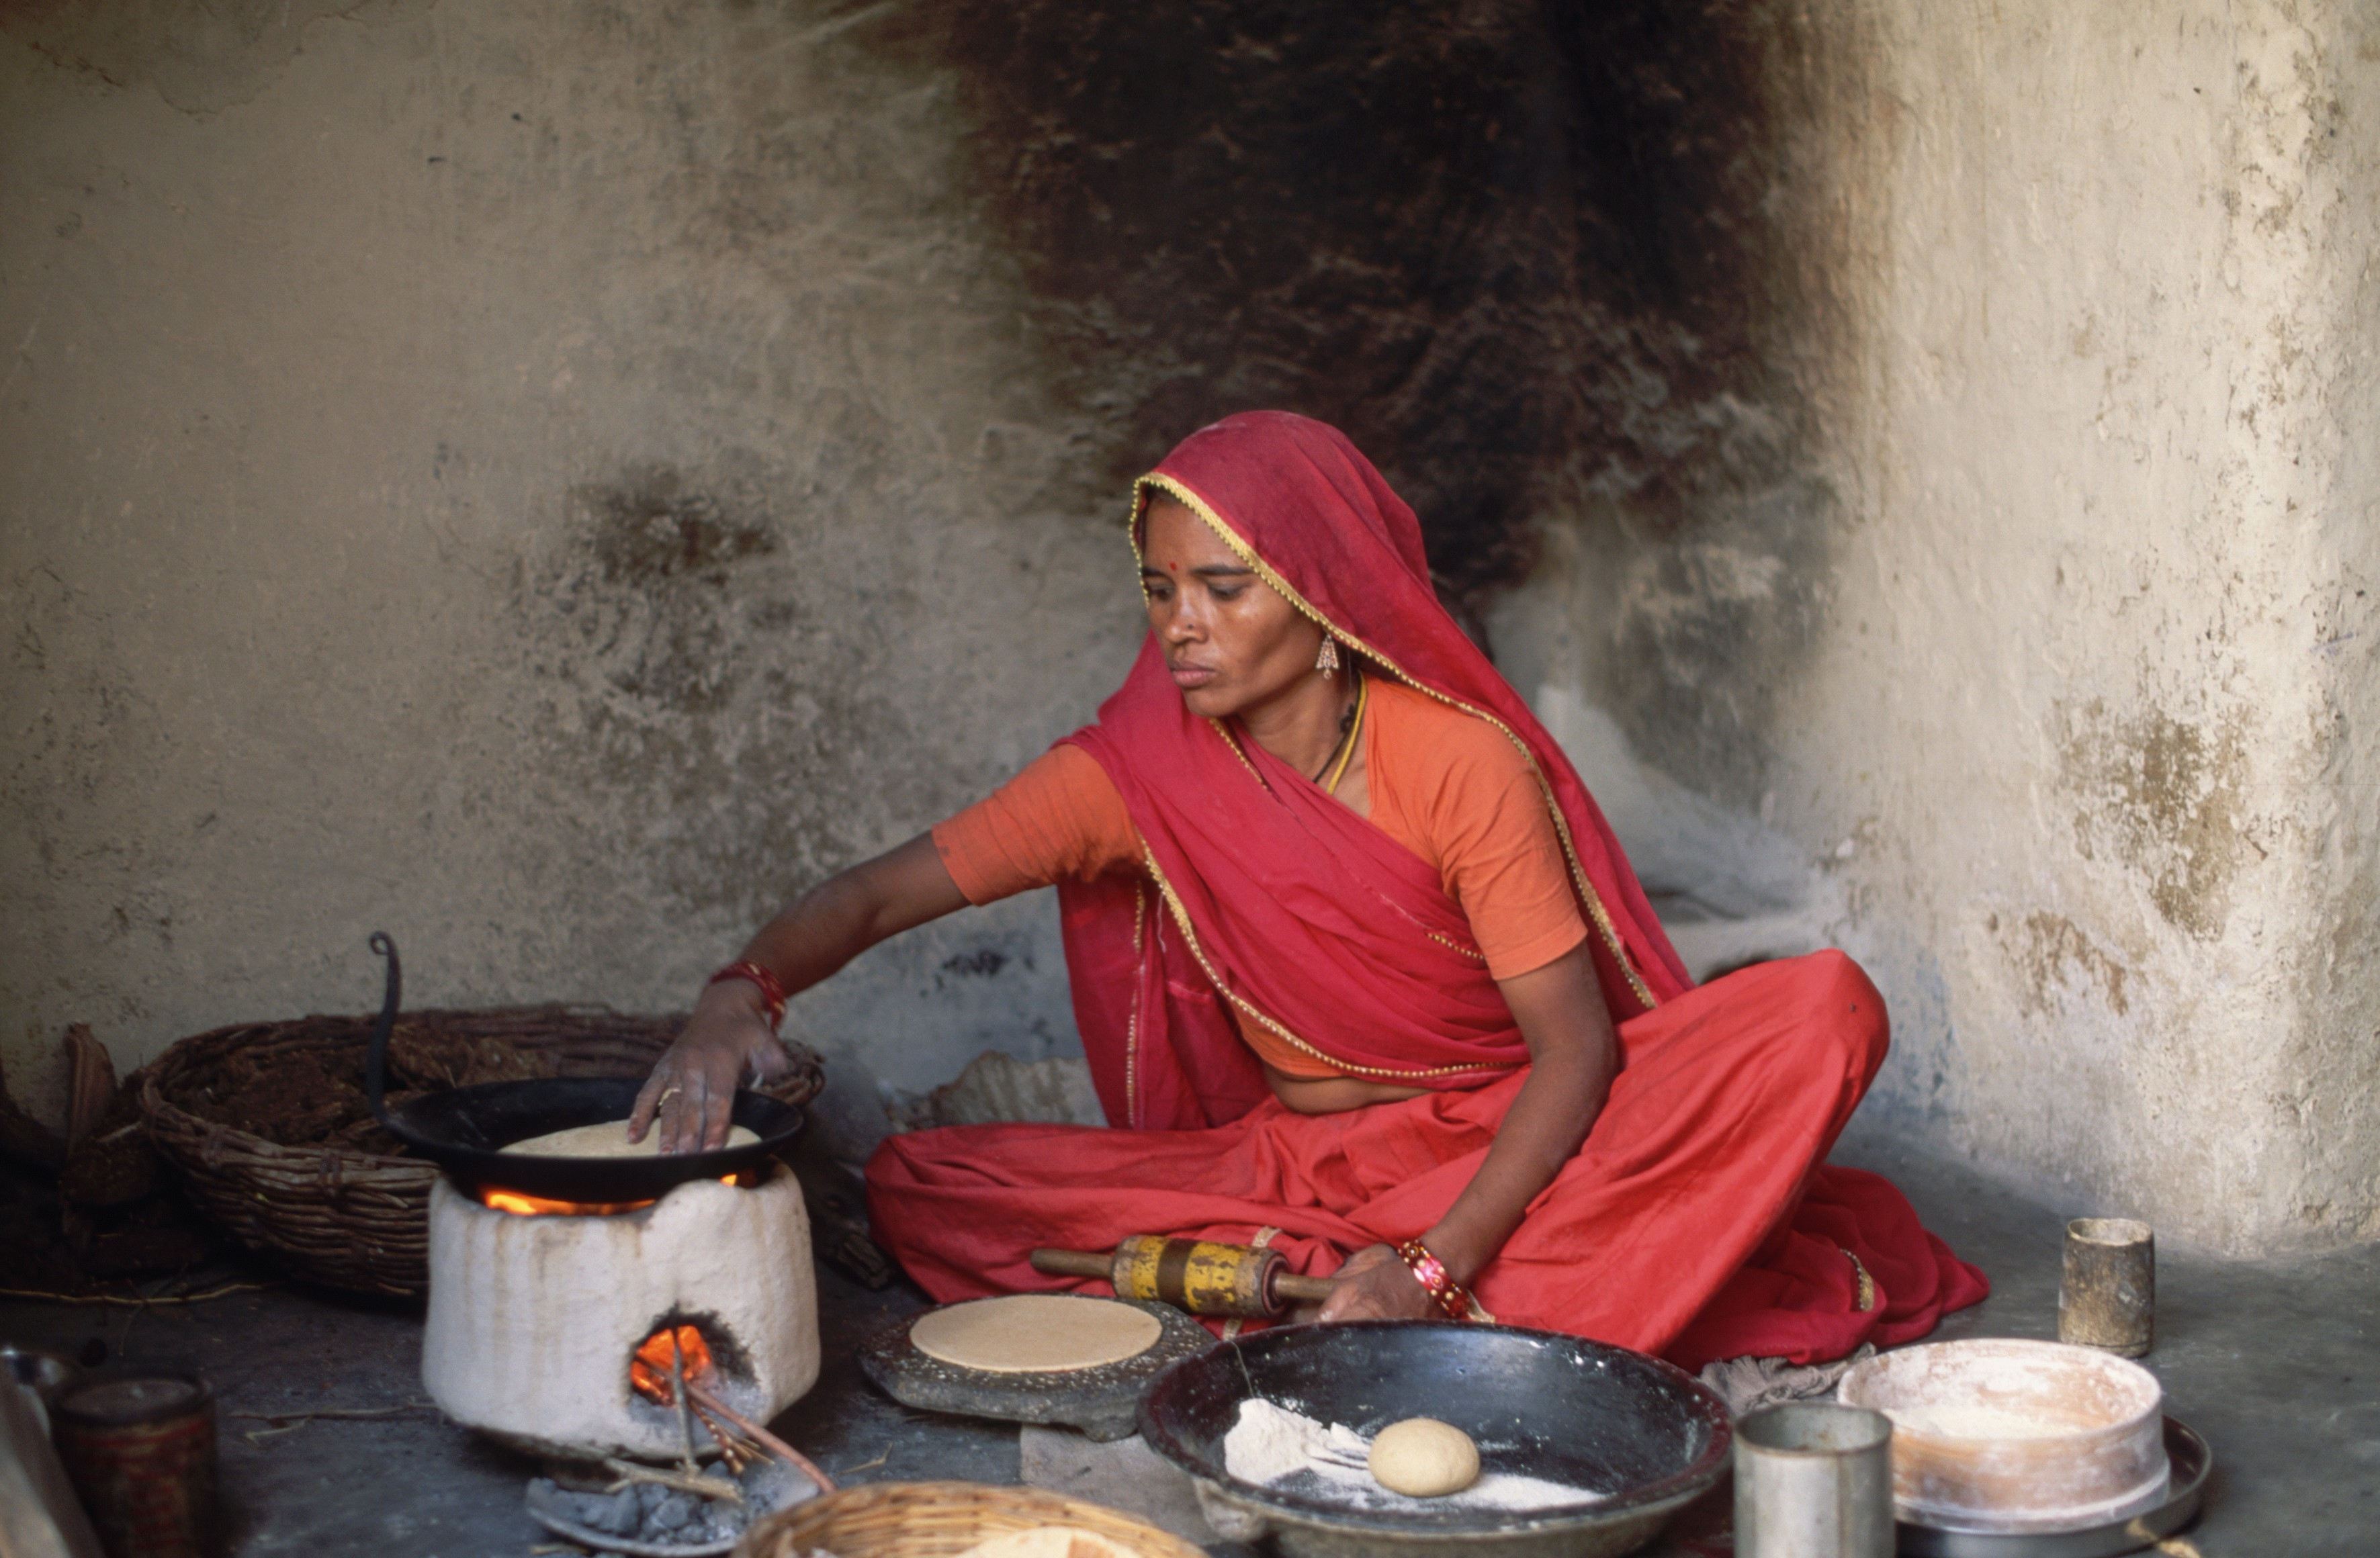 A woman bakes flat bread on a fuel efficient stove in Tilonia in north-east India. Photo © Albrecht G. Schaefer/CORBIS